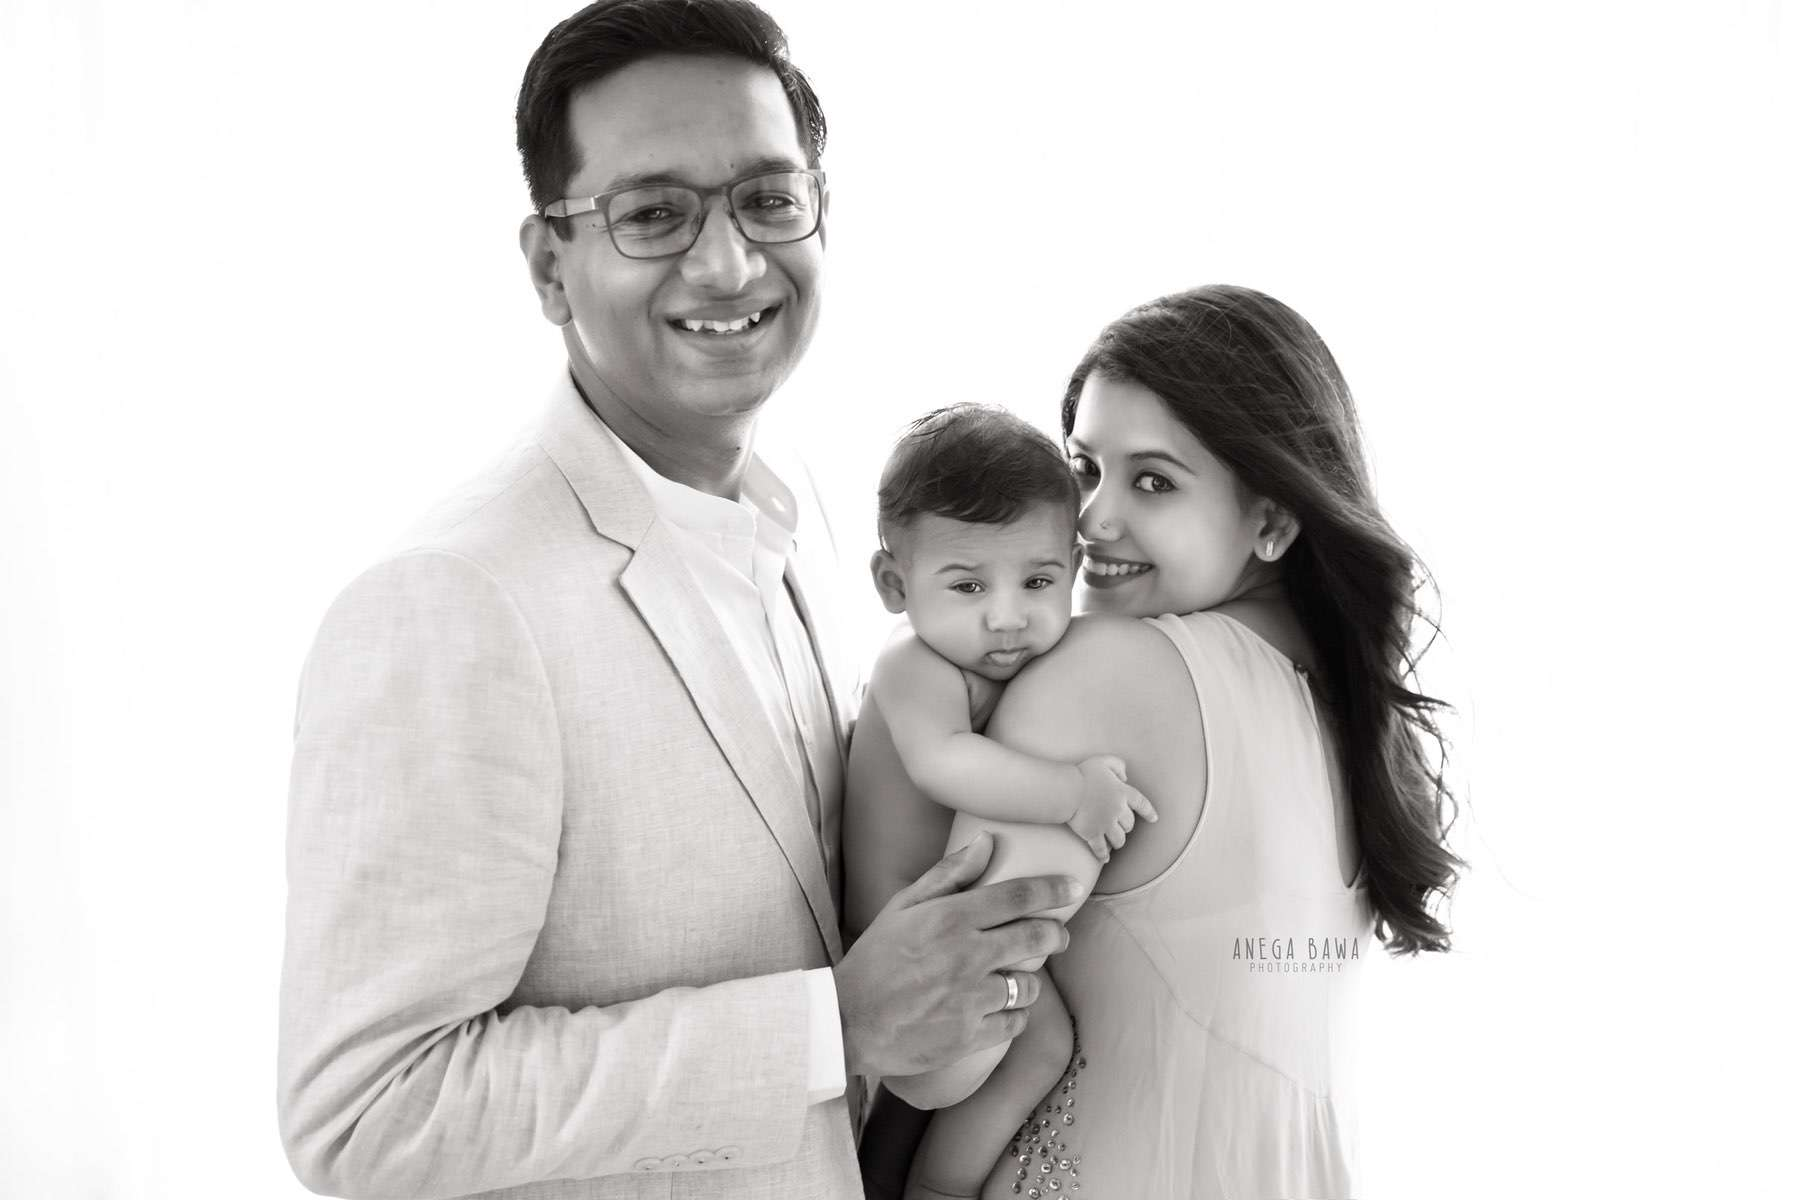 249910-black-and-white-family-baby-photography-delhi-4-5-6-7-months-baby-photoshoot-gurgaon-anega-bawa